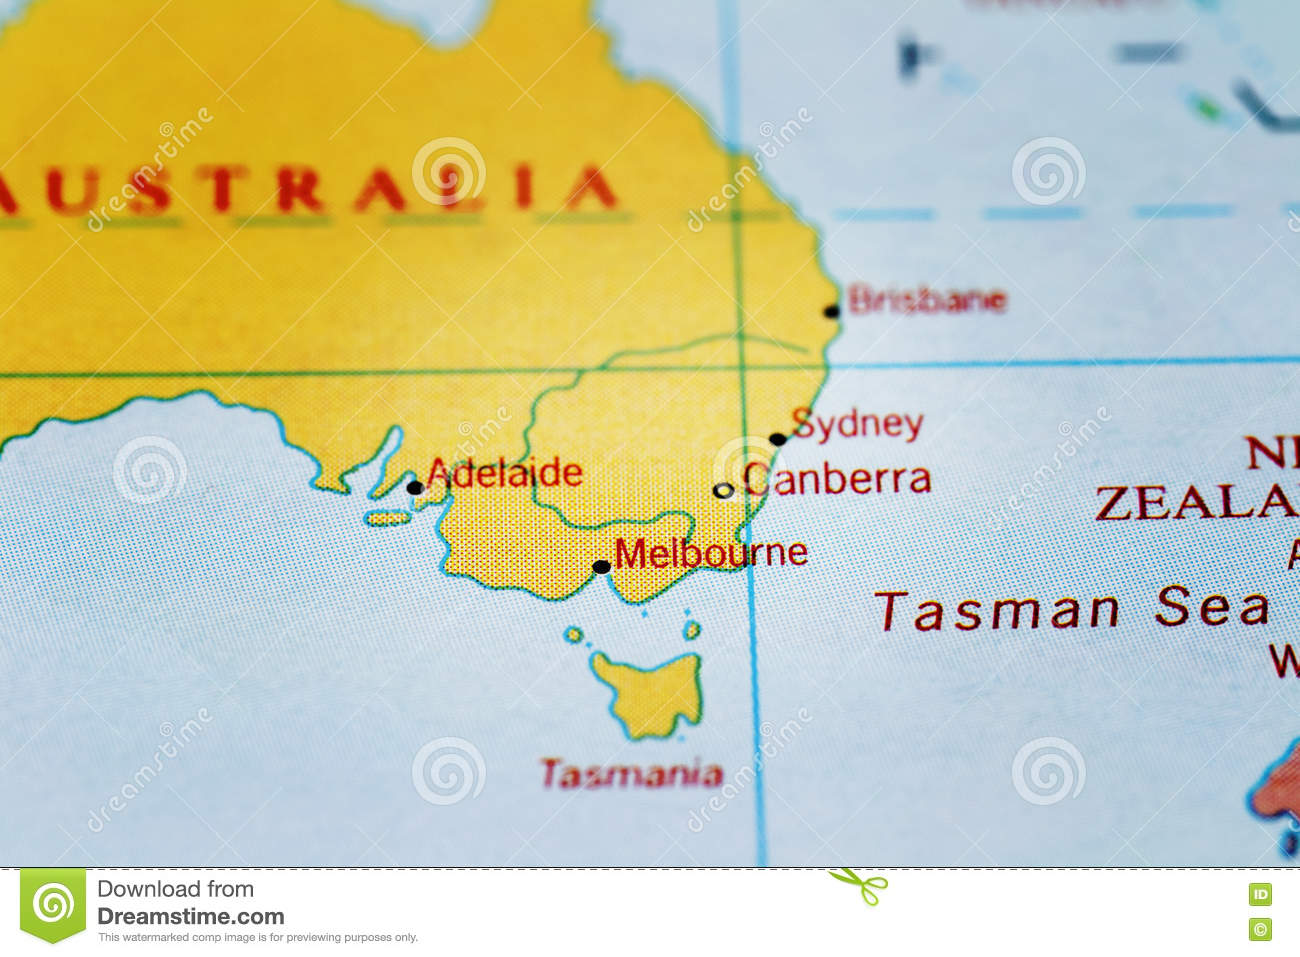 Map Canberra Australia.Canberra Sydney Melbourne Adelaide And Australia On Map Stock